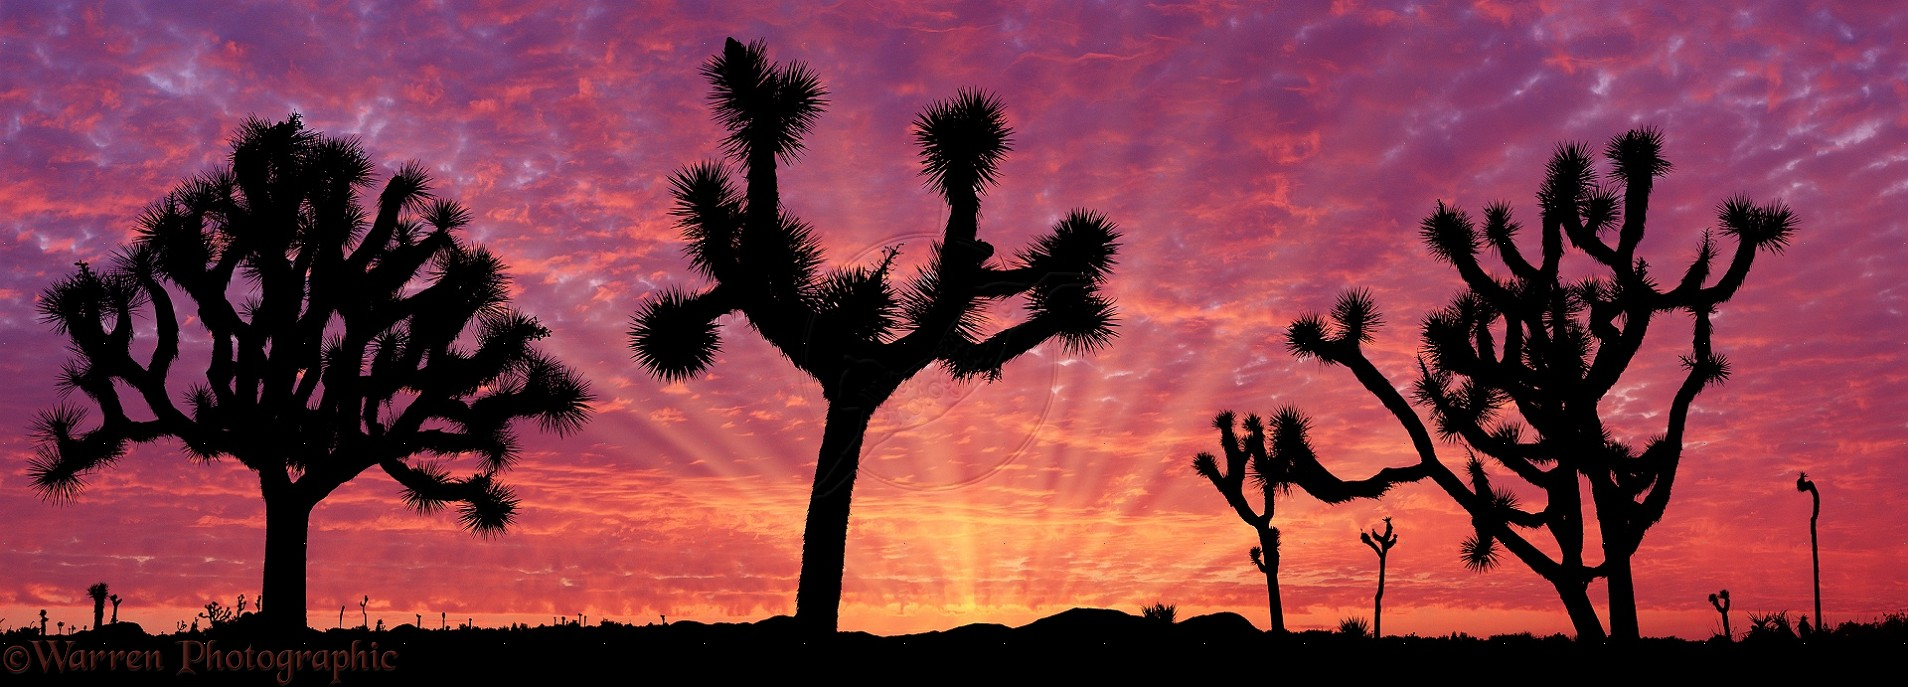 Joshua Trees (Yucca brevifolia) at sunrise. Courtesy of Warren Photographic.